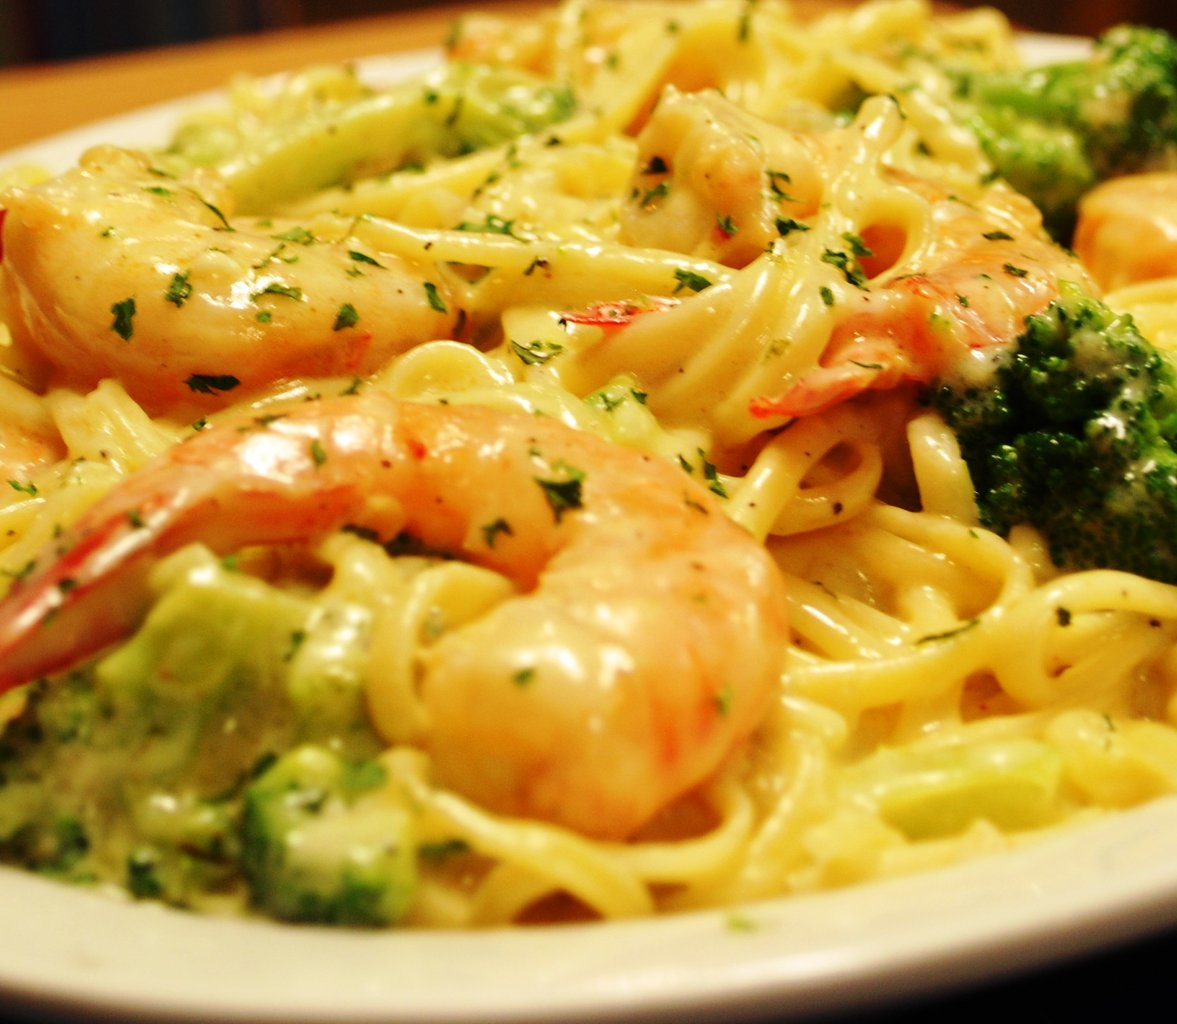 Cooking Guide 101: Shrimp Alfredo Pasta And A Bottle Of Pinot Grigio ...